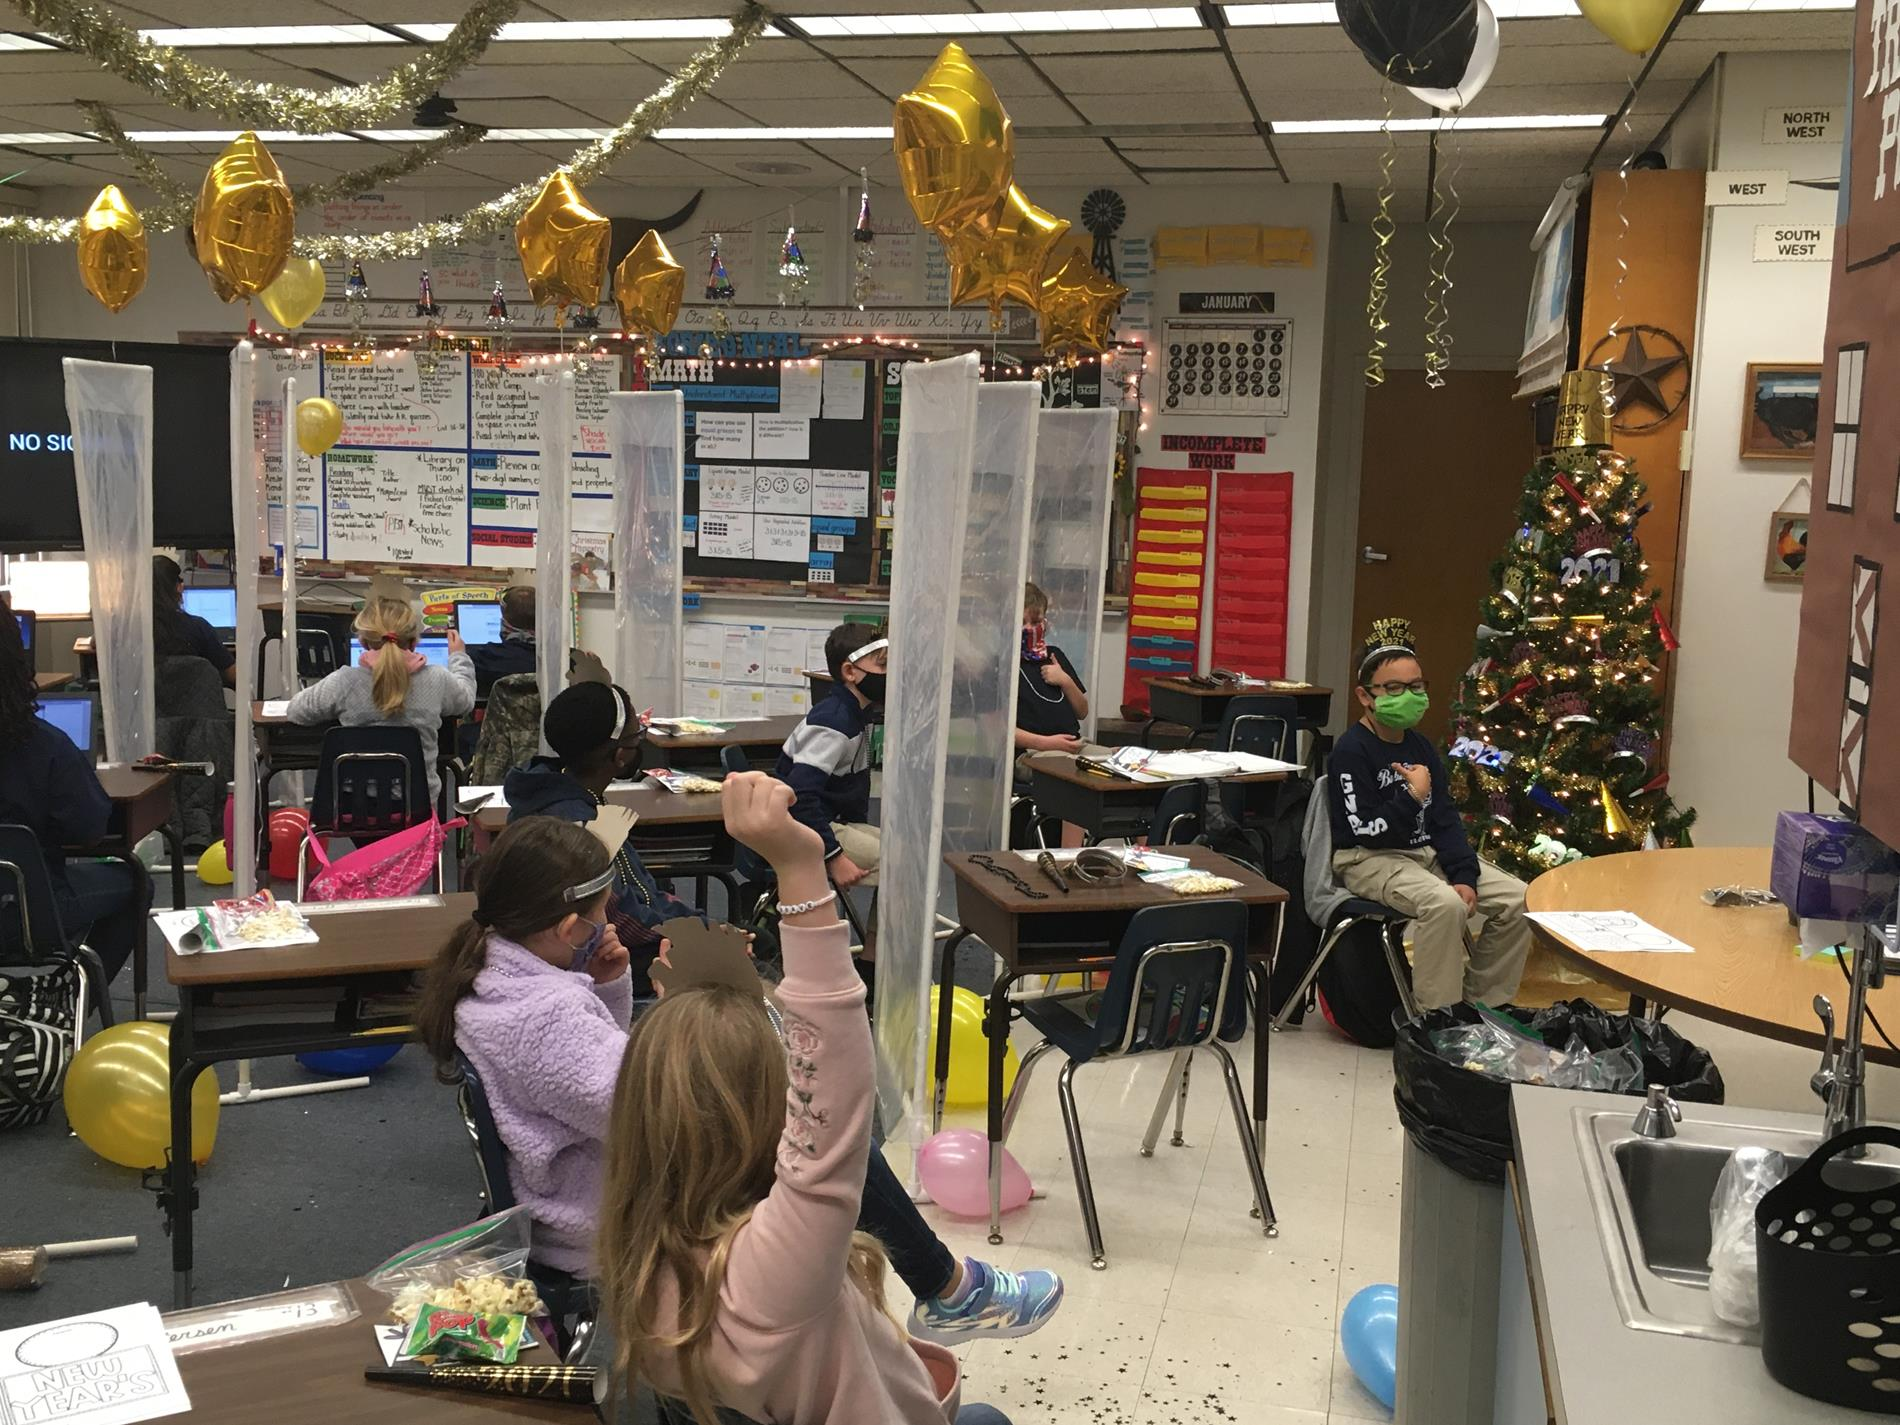 Classroom decorations with balloons and streamers hanging